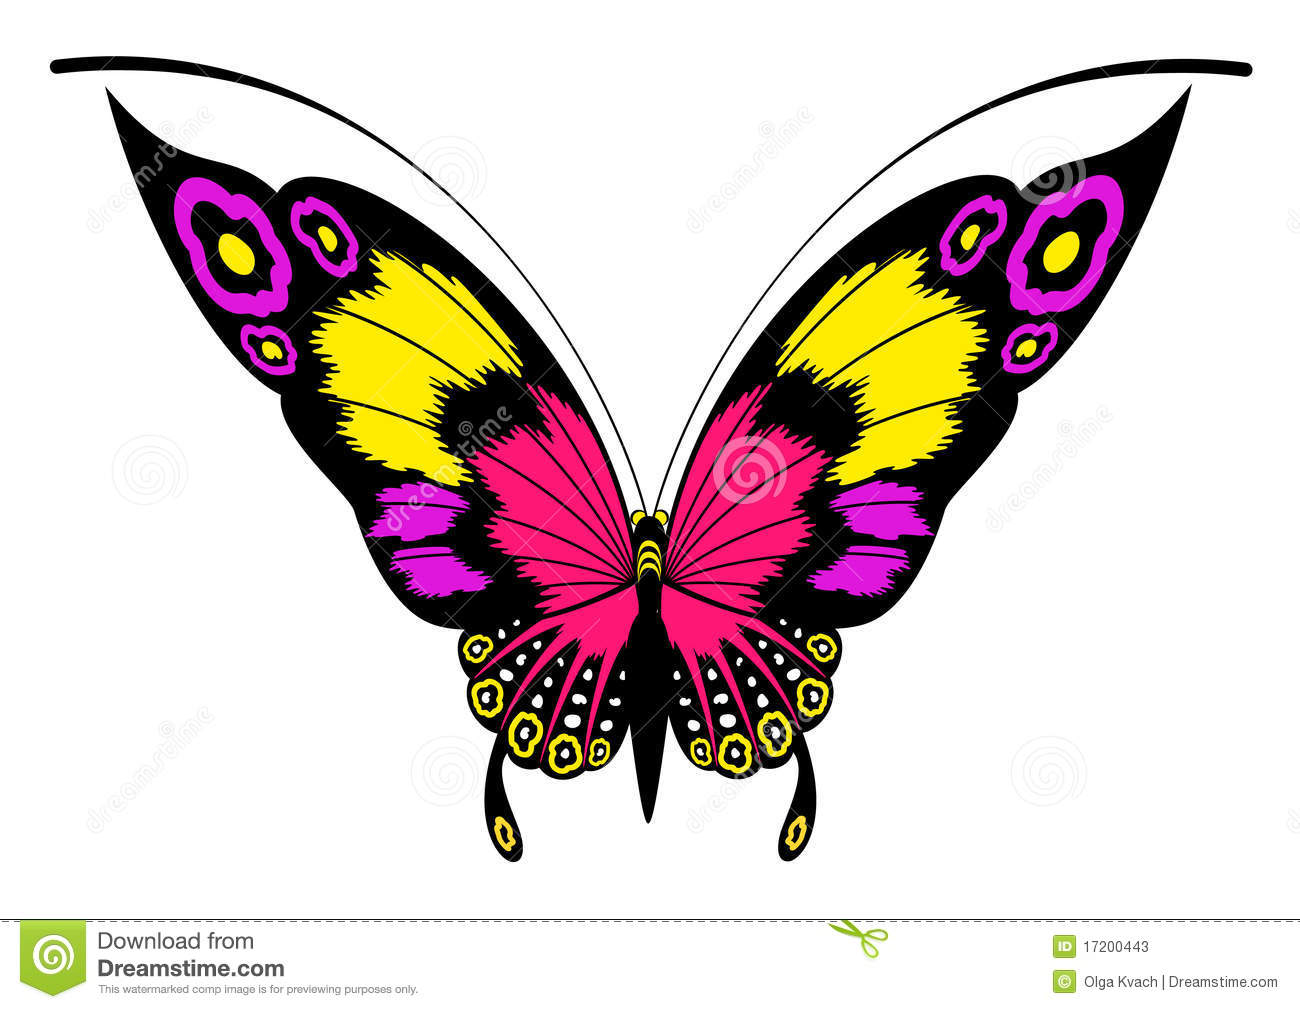 More similar stock images of ` Beautiful butterfly for a design `